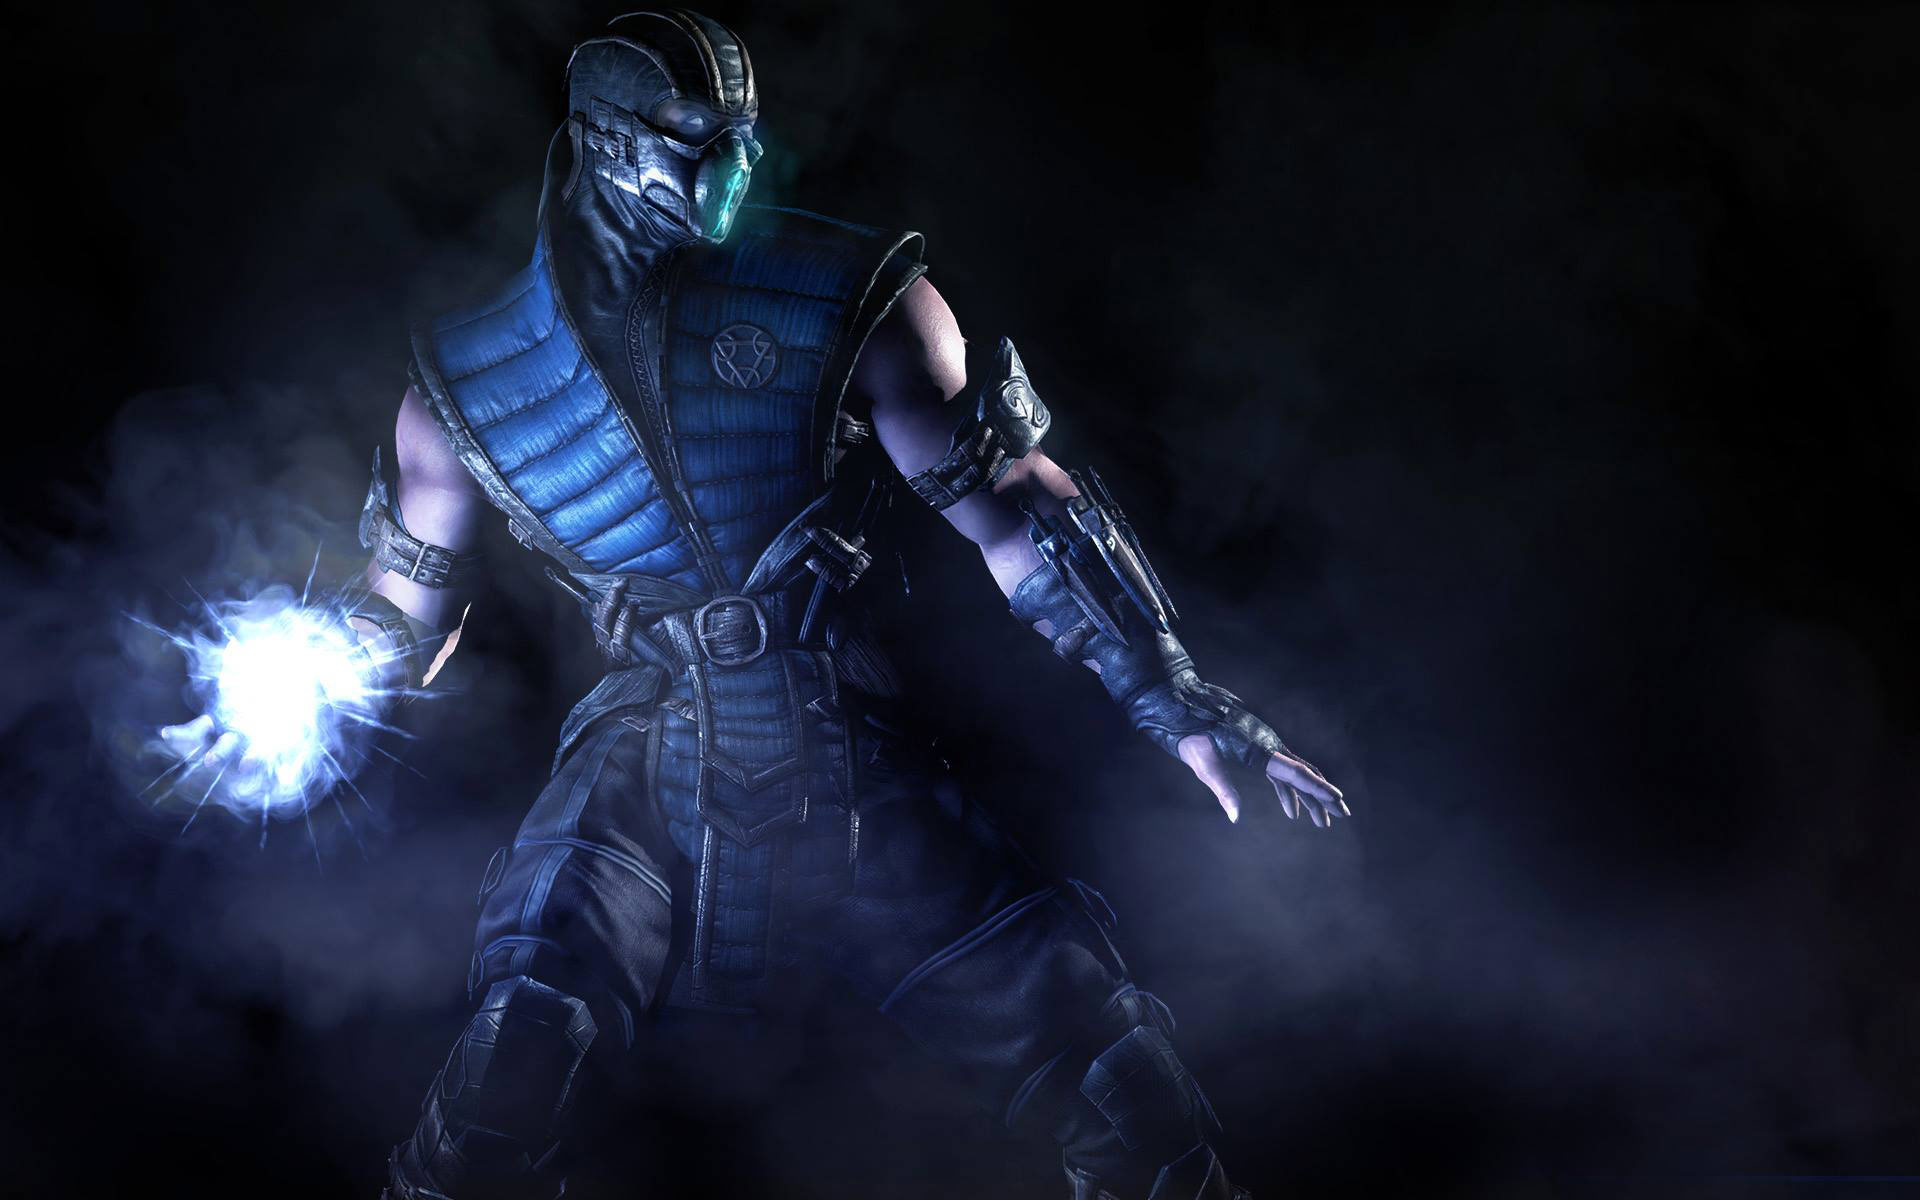 Mortal Kombat X - How to Play Sub-Zero: Combos and Strategies | Tips | Primagames.com